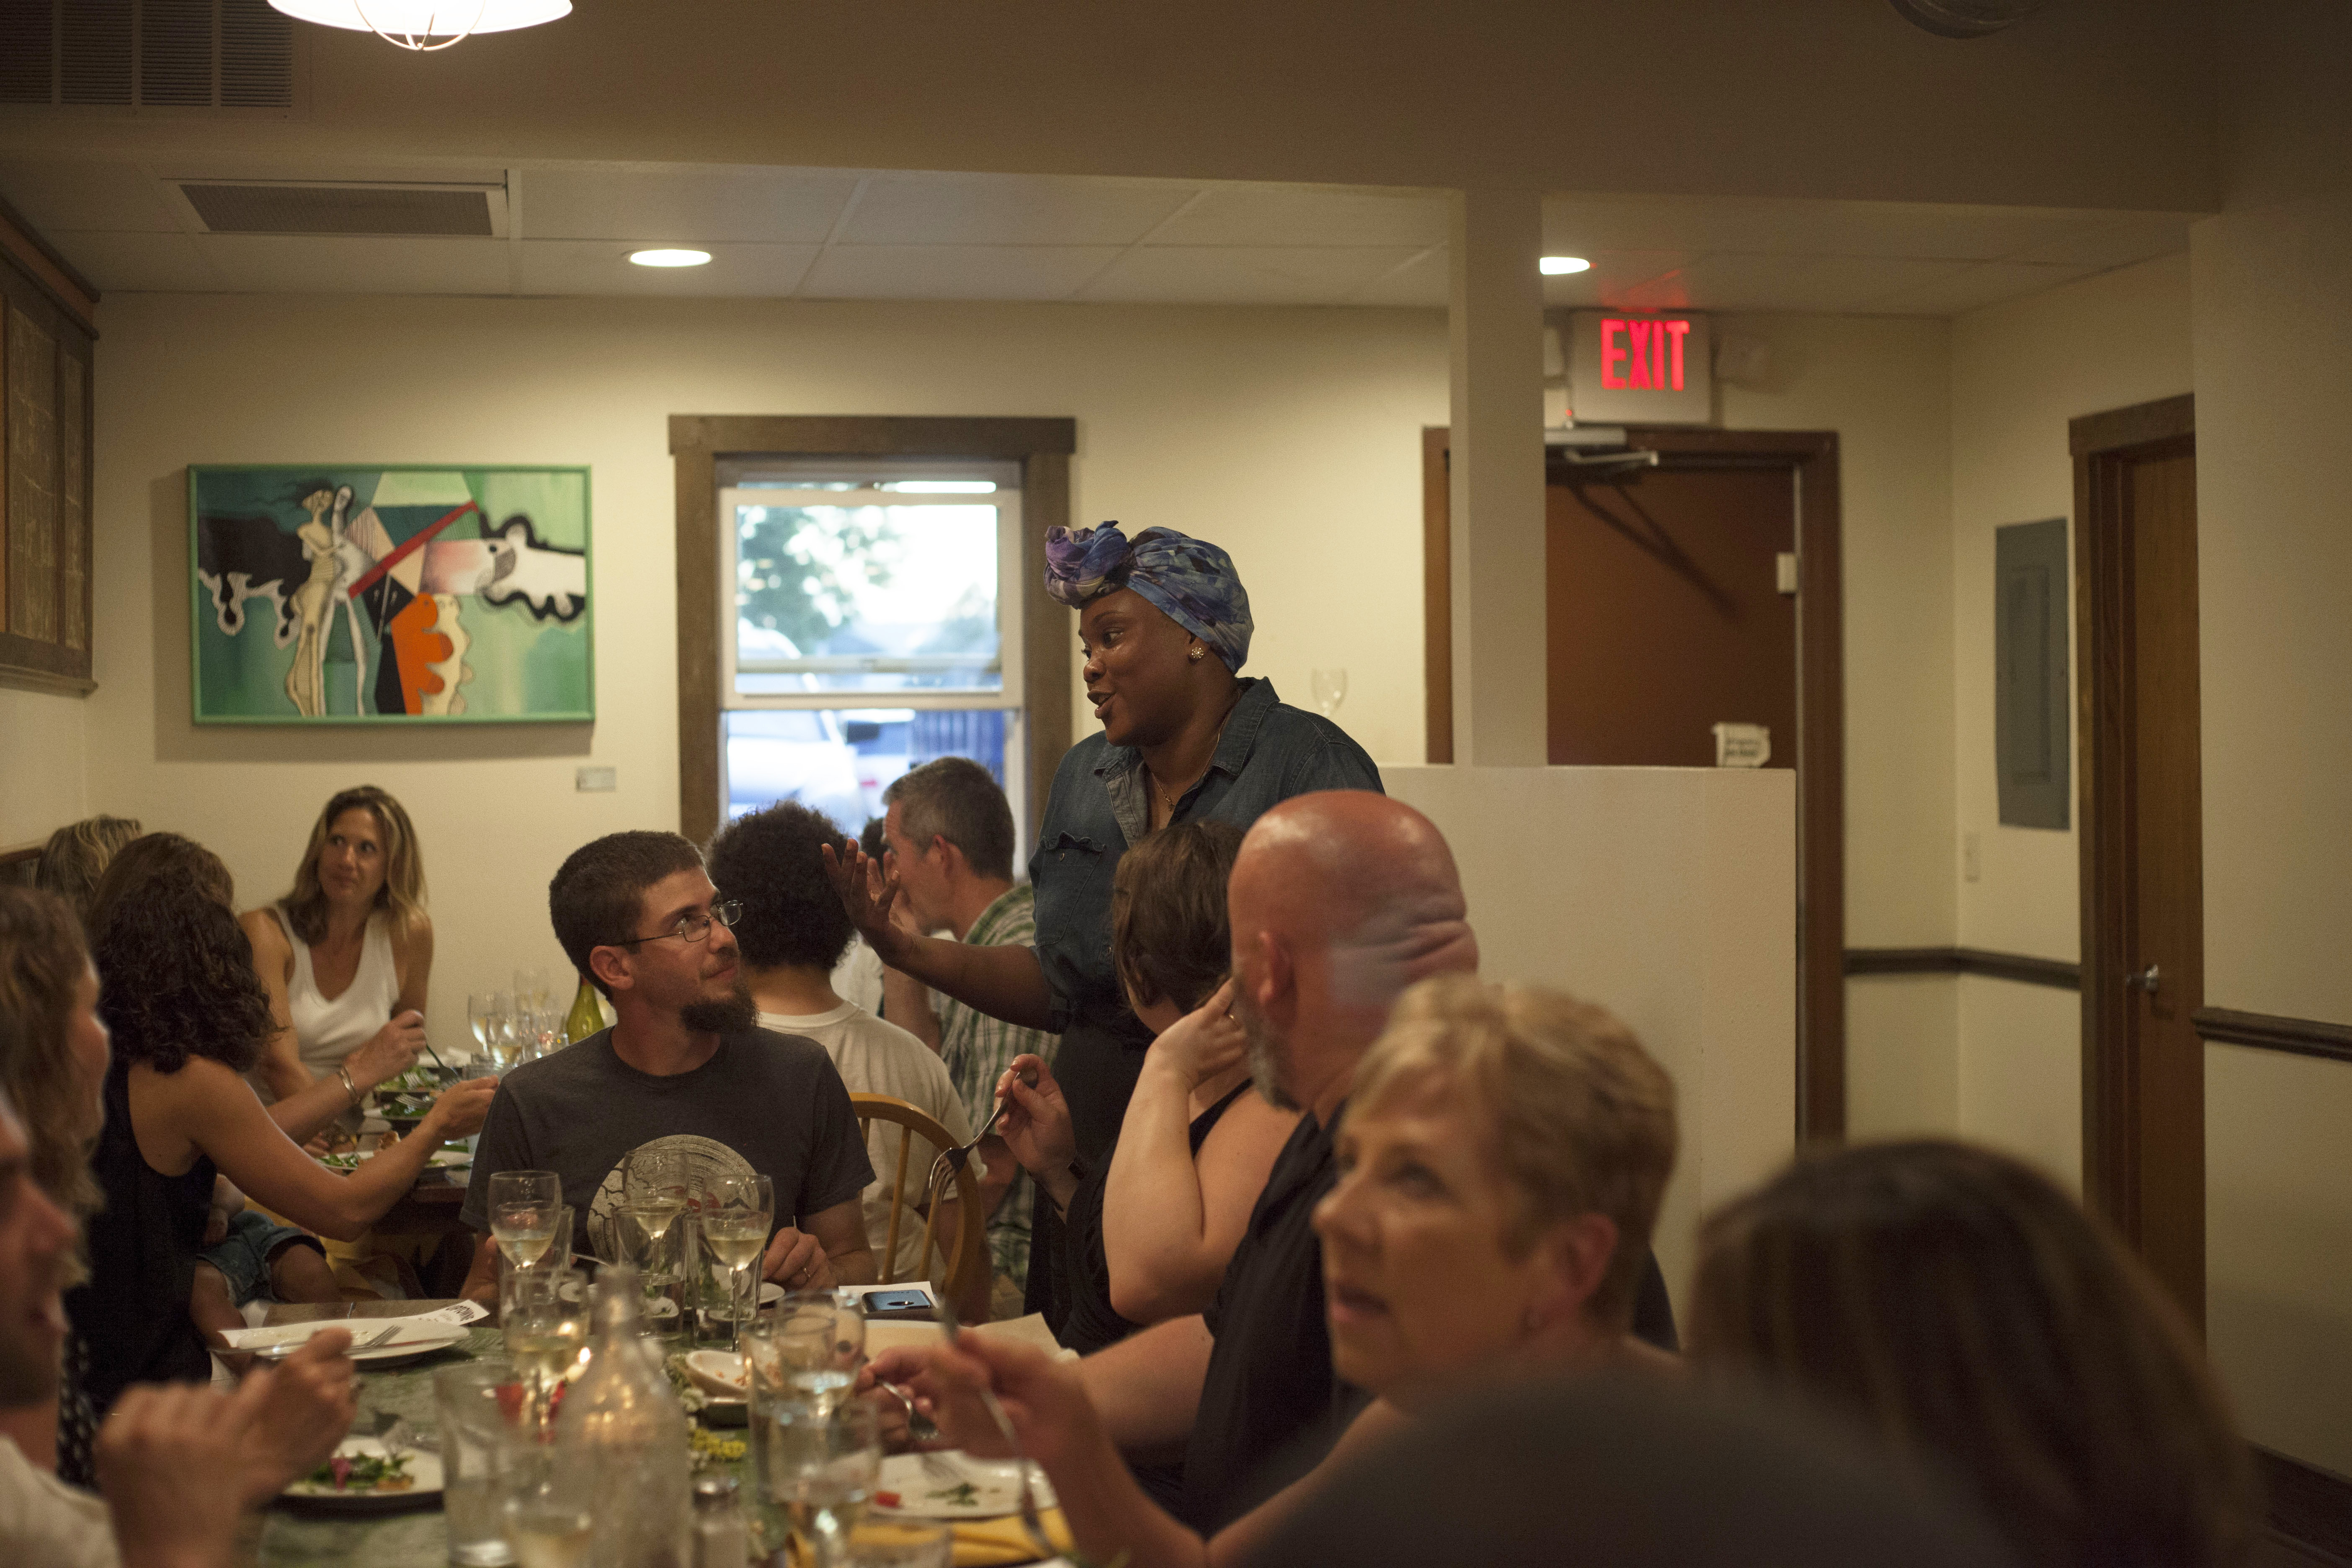 A woman, standing, talks with people seated at a dinner table.